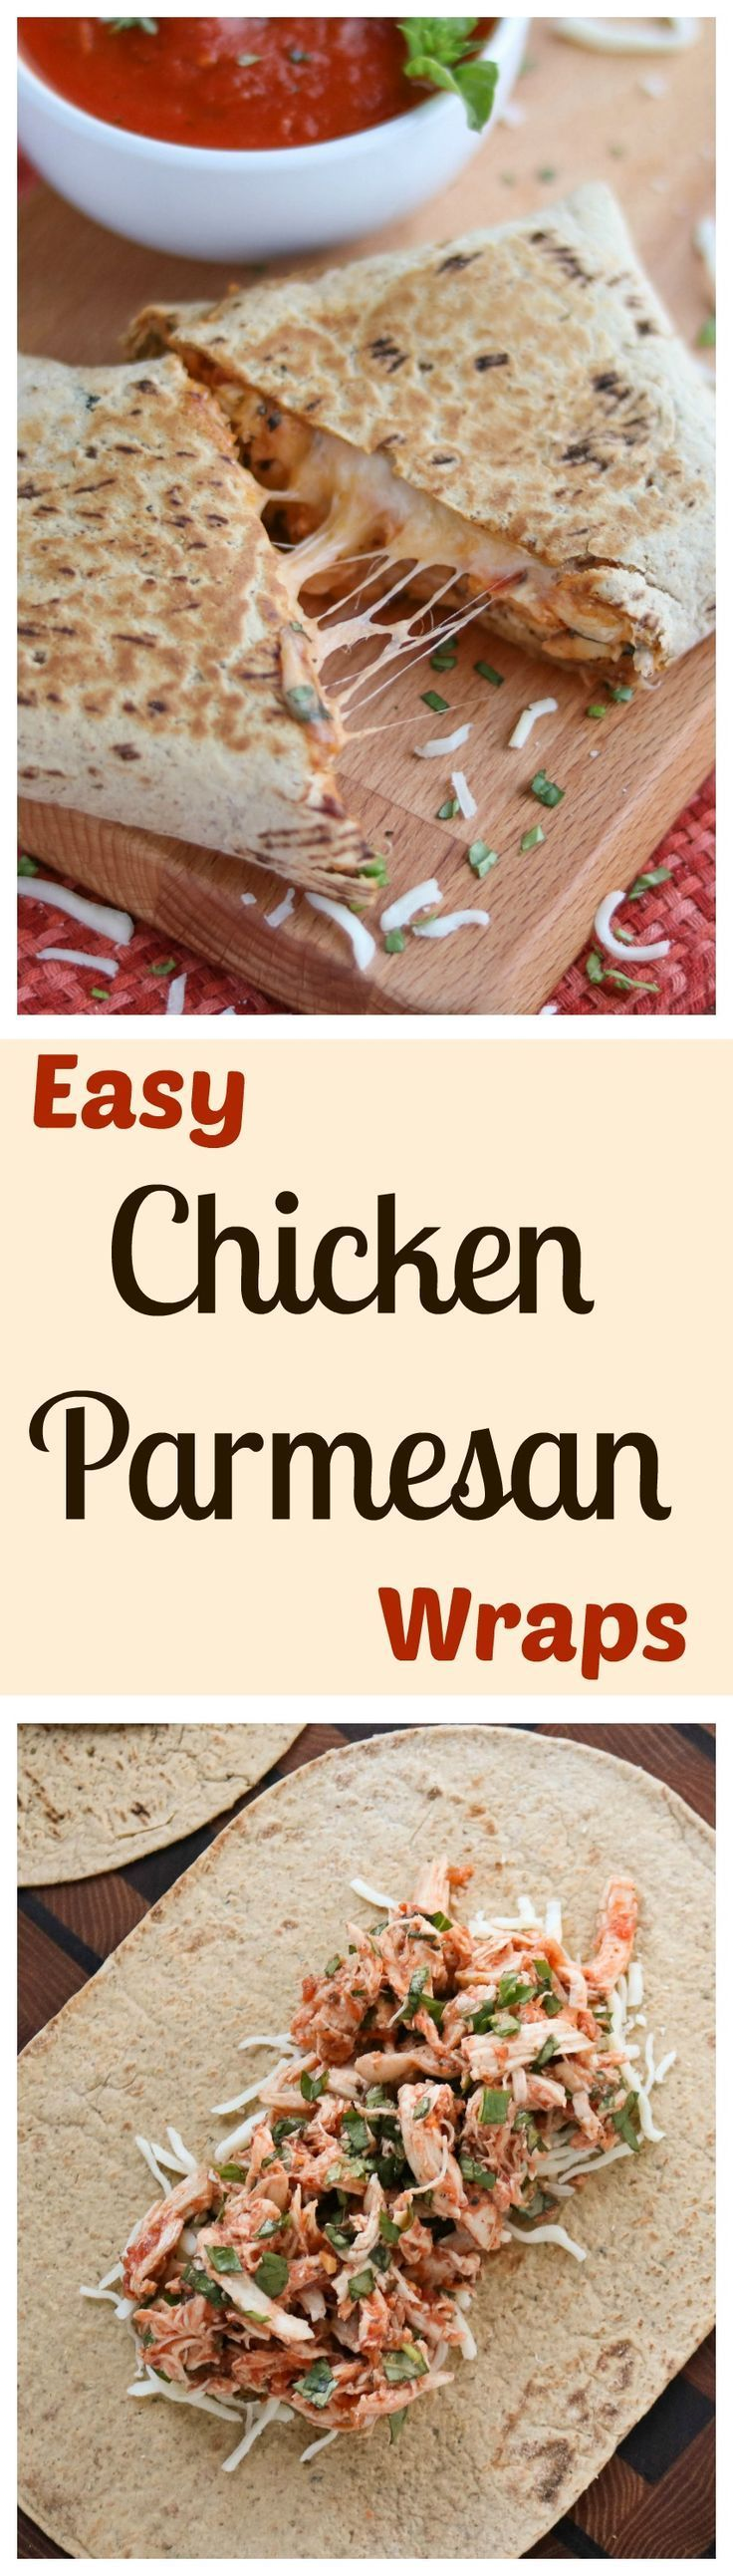 These Easy Chicken Parmesan Wraps are a super-fast, 15-minute meal! Make them ahead - they're portable and freezable, too! All the cheesy, saucy, comforting flavors of your favorite chicken parmesan casserole… yet so quick and simple! | Two Healthy Kitchens